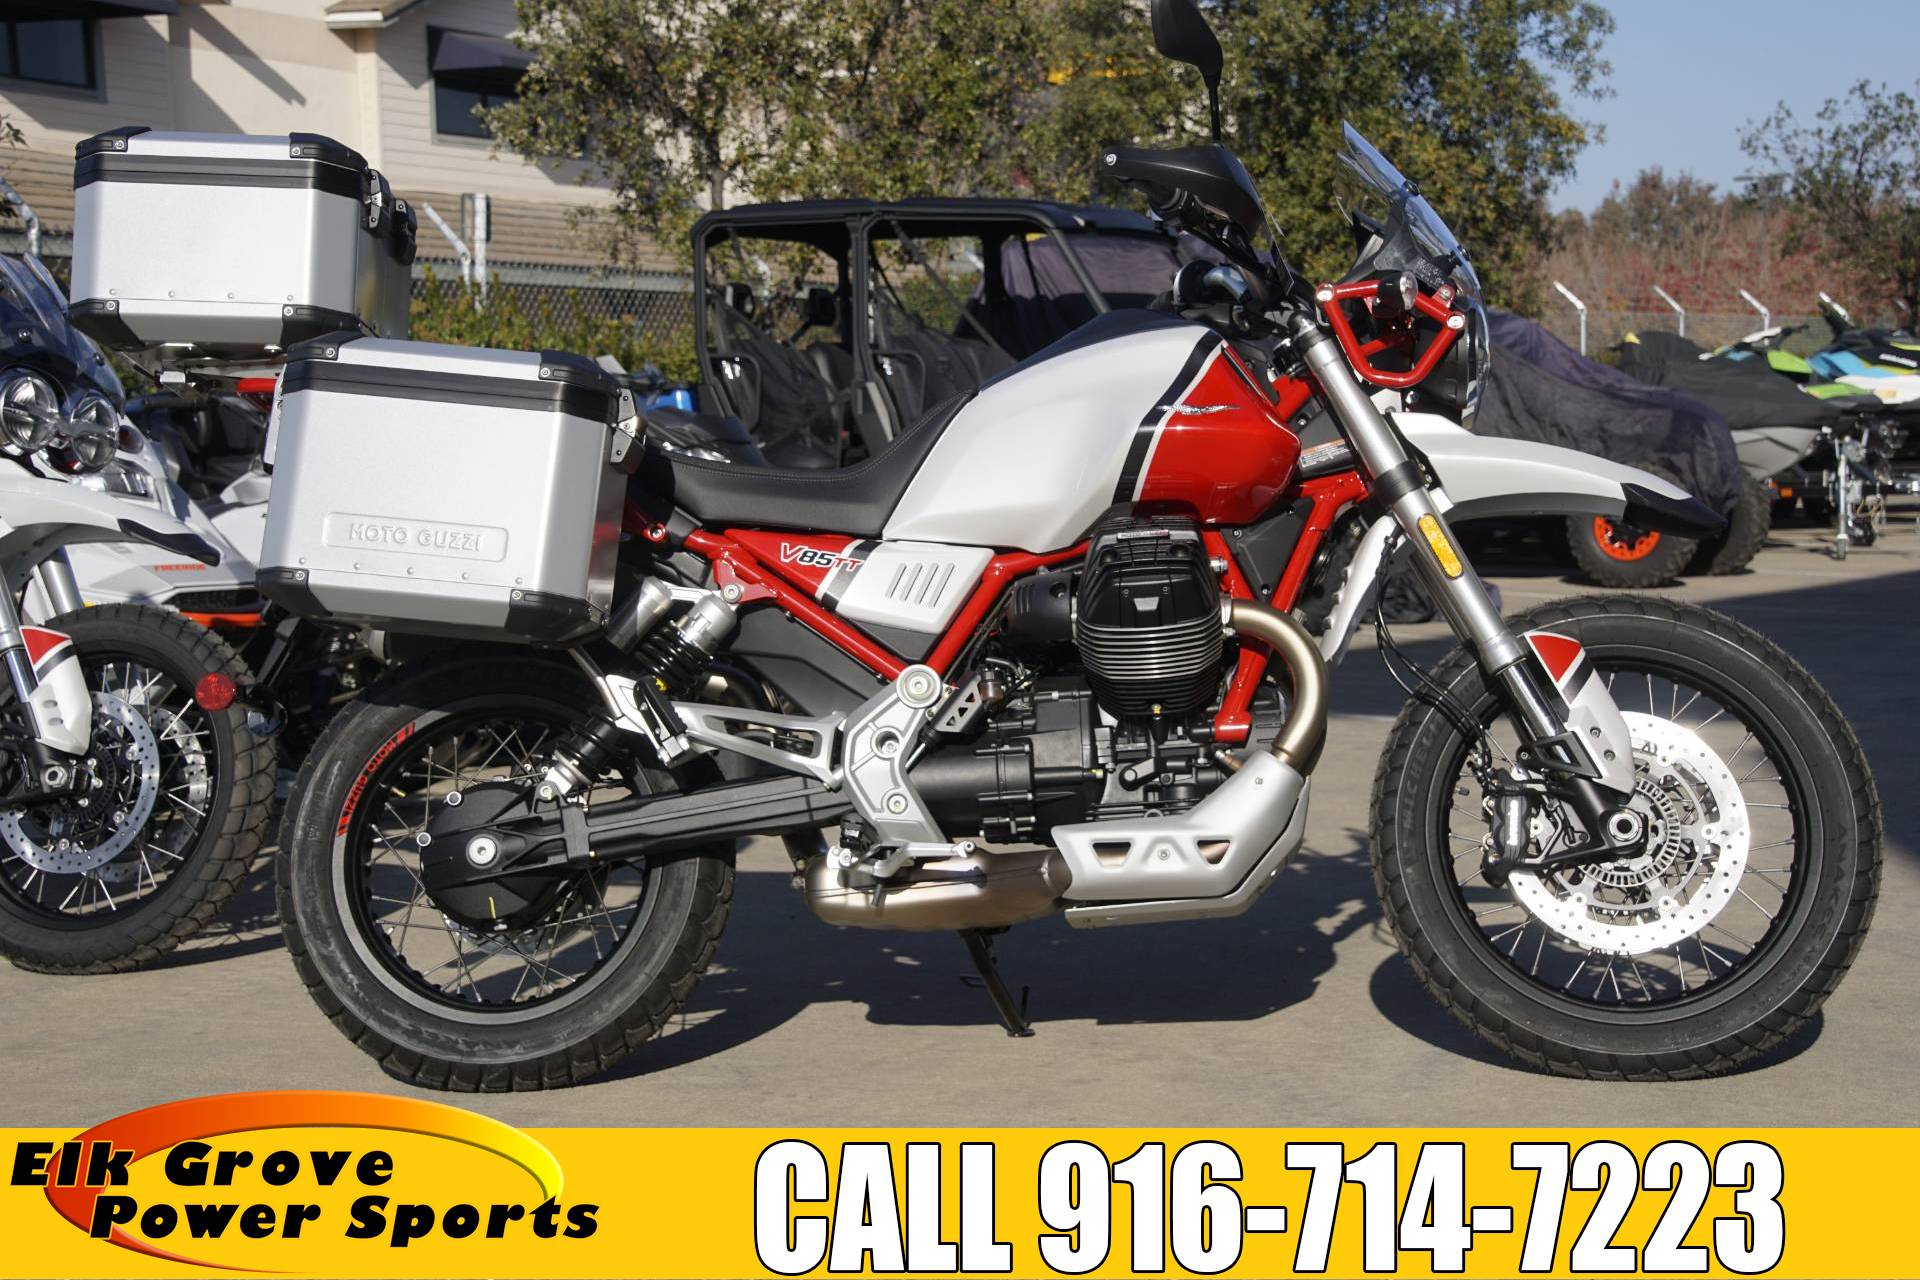 2020 Moto Guzzi V85 TT Adventure in Elk Grove, California - Photo 1